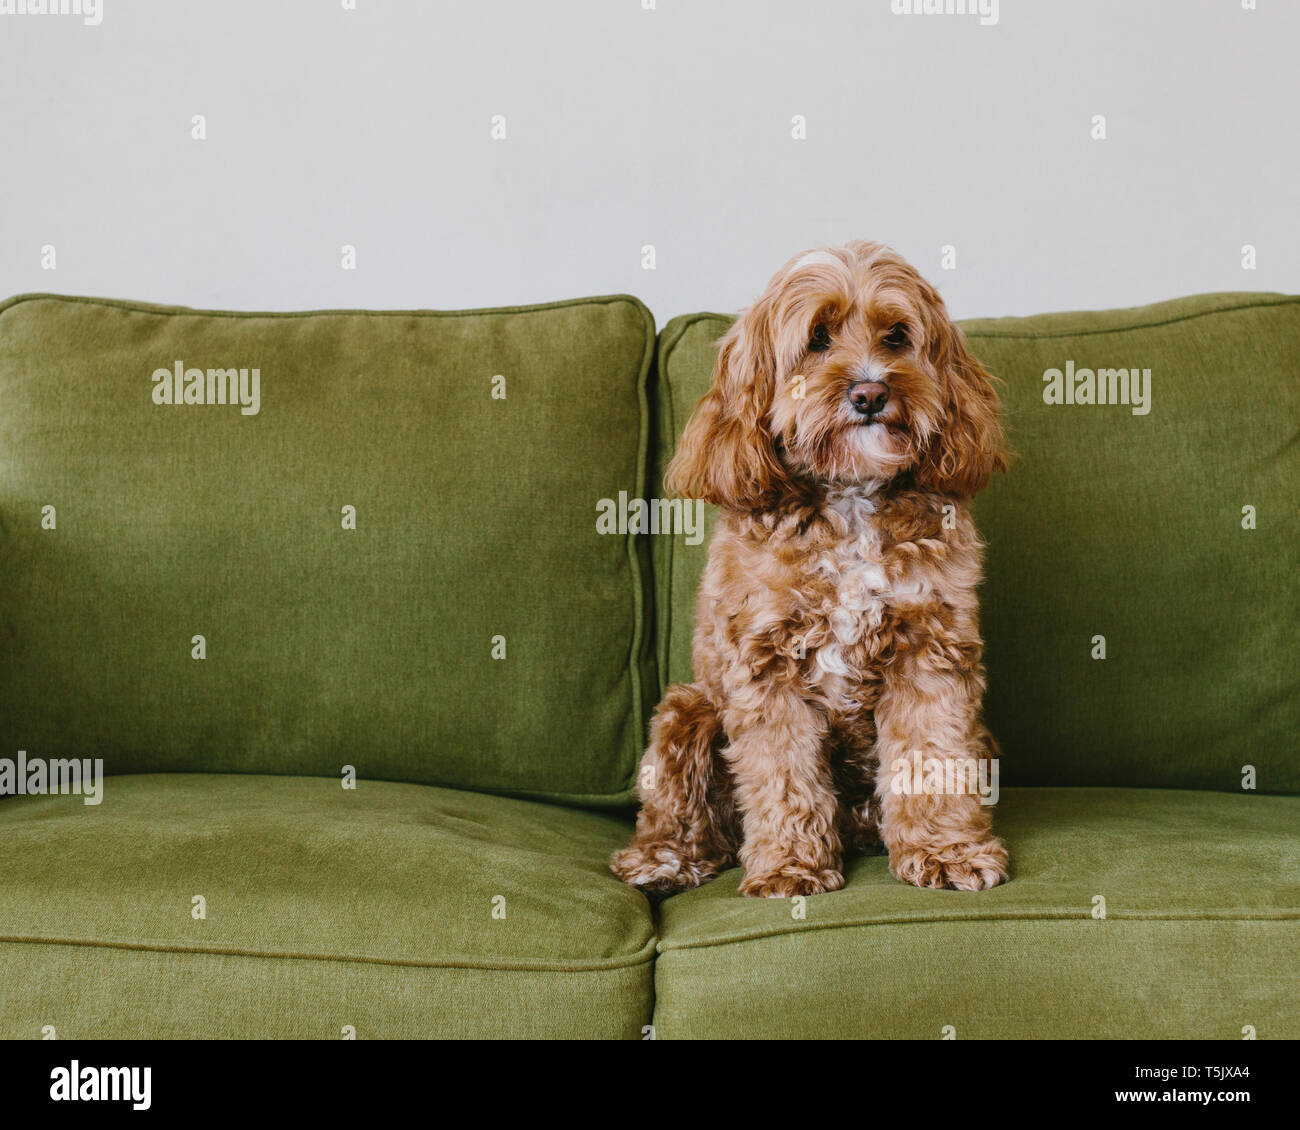 A cockapoo mixed breed dog, a cocker spaniel poodle cross, a family pet with brown curly coat sitting on a chair - Stock Image